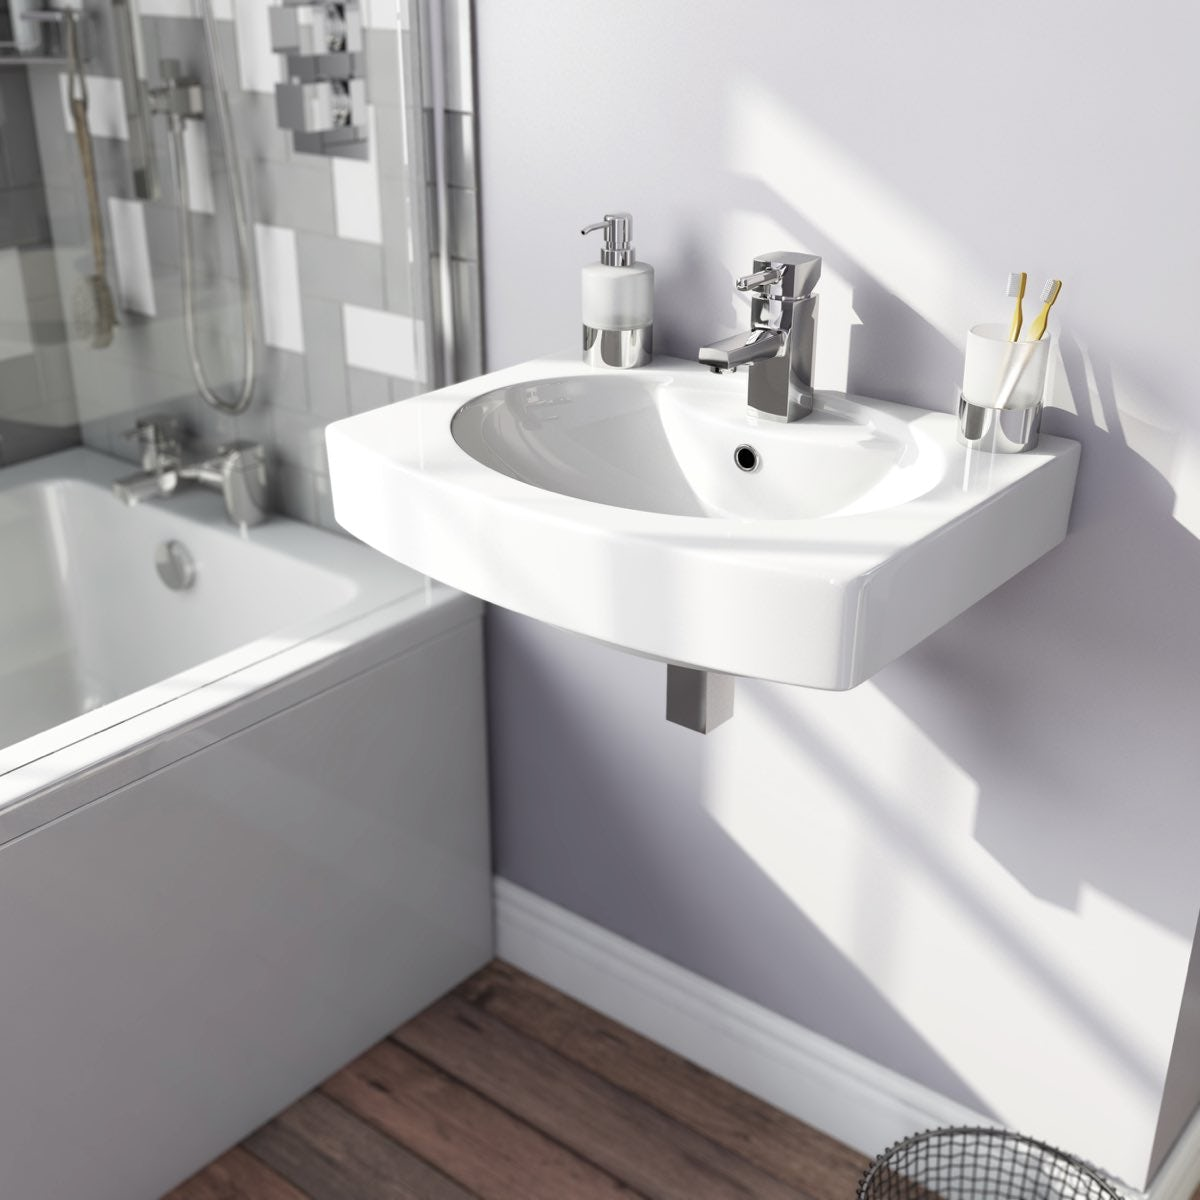 Vermont Wall Mounted Basin